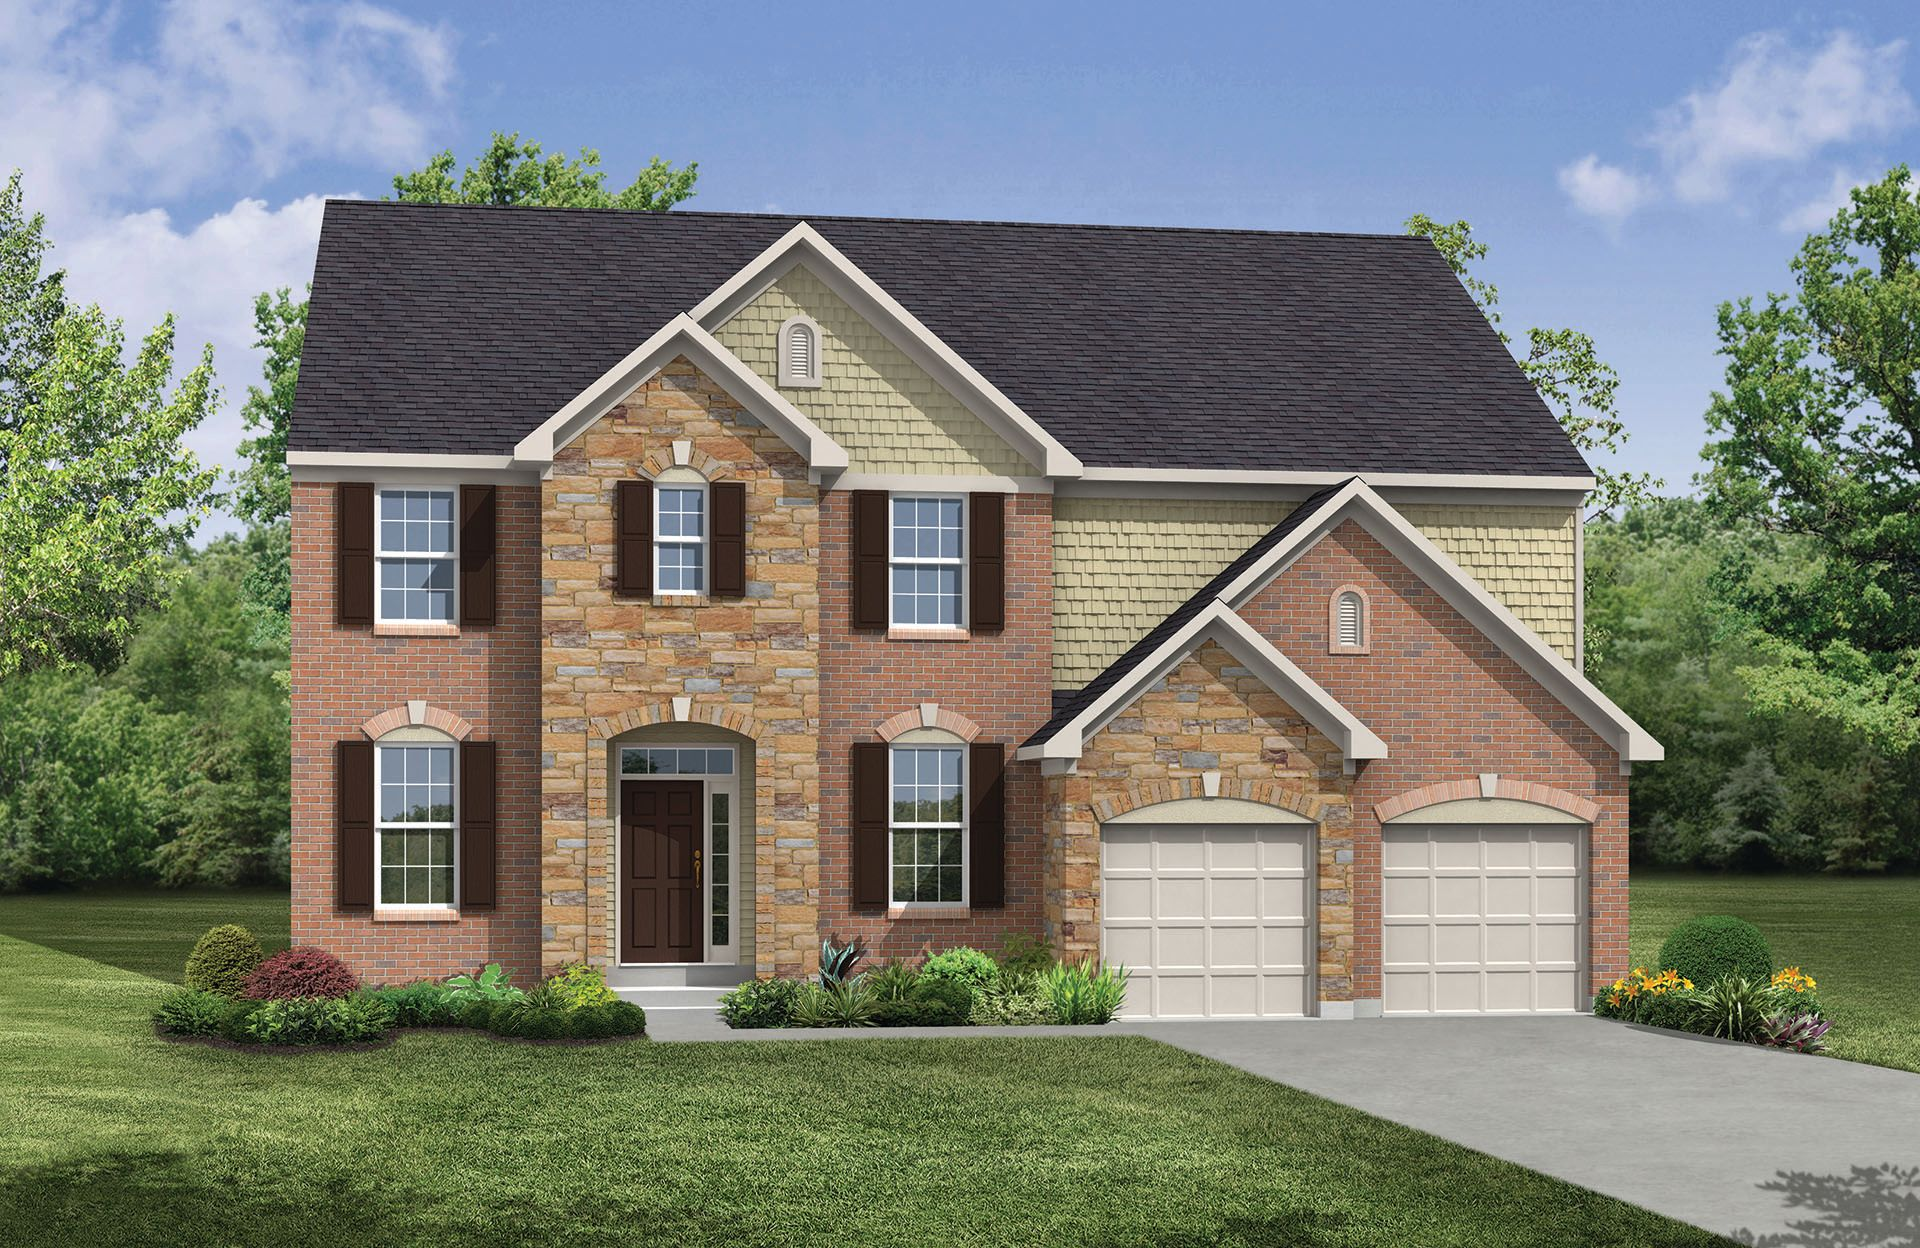 Single Family for Sale at Estates At Rocky Pen - Buchanan 85 Edgewater Drive Falmouth, Virginia 22405 United States